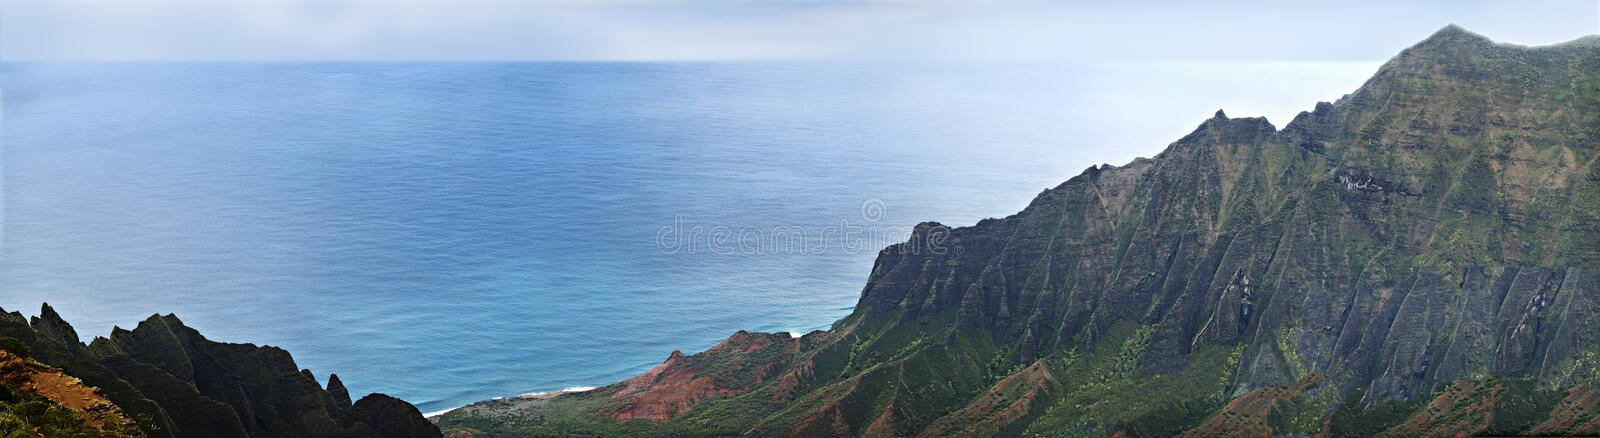 Mountains and Sea royalty free stock images